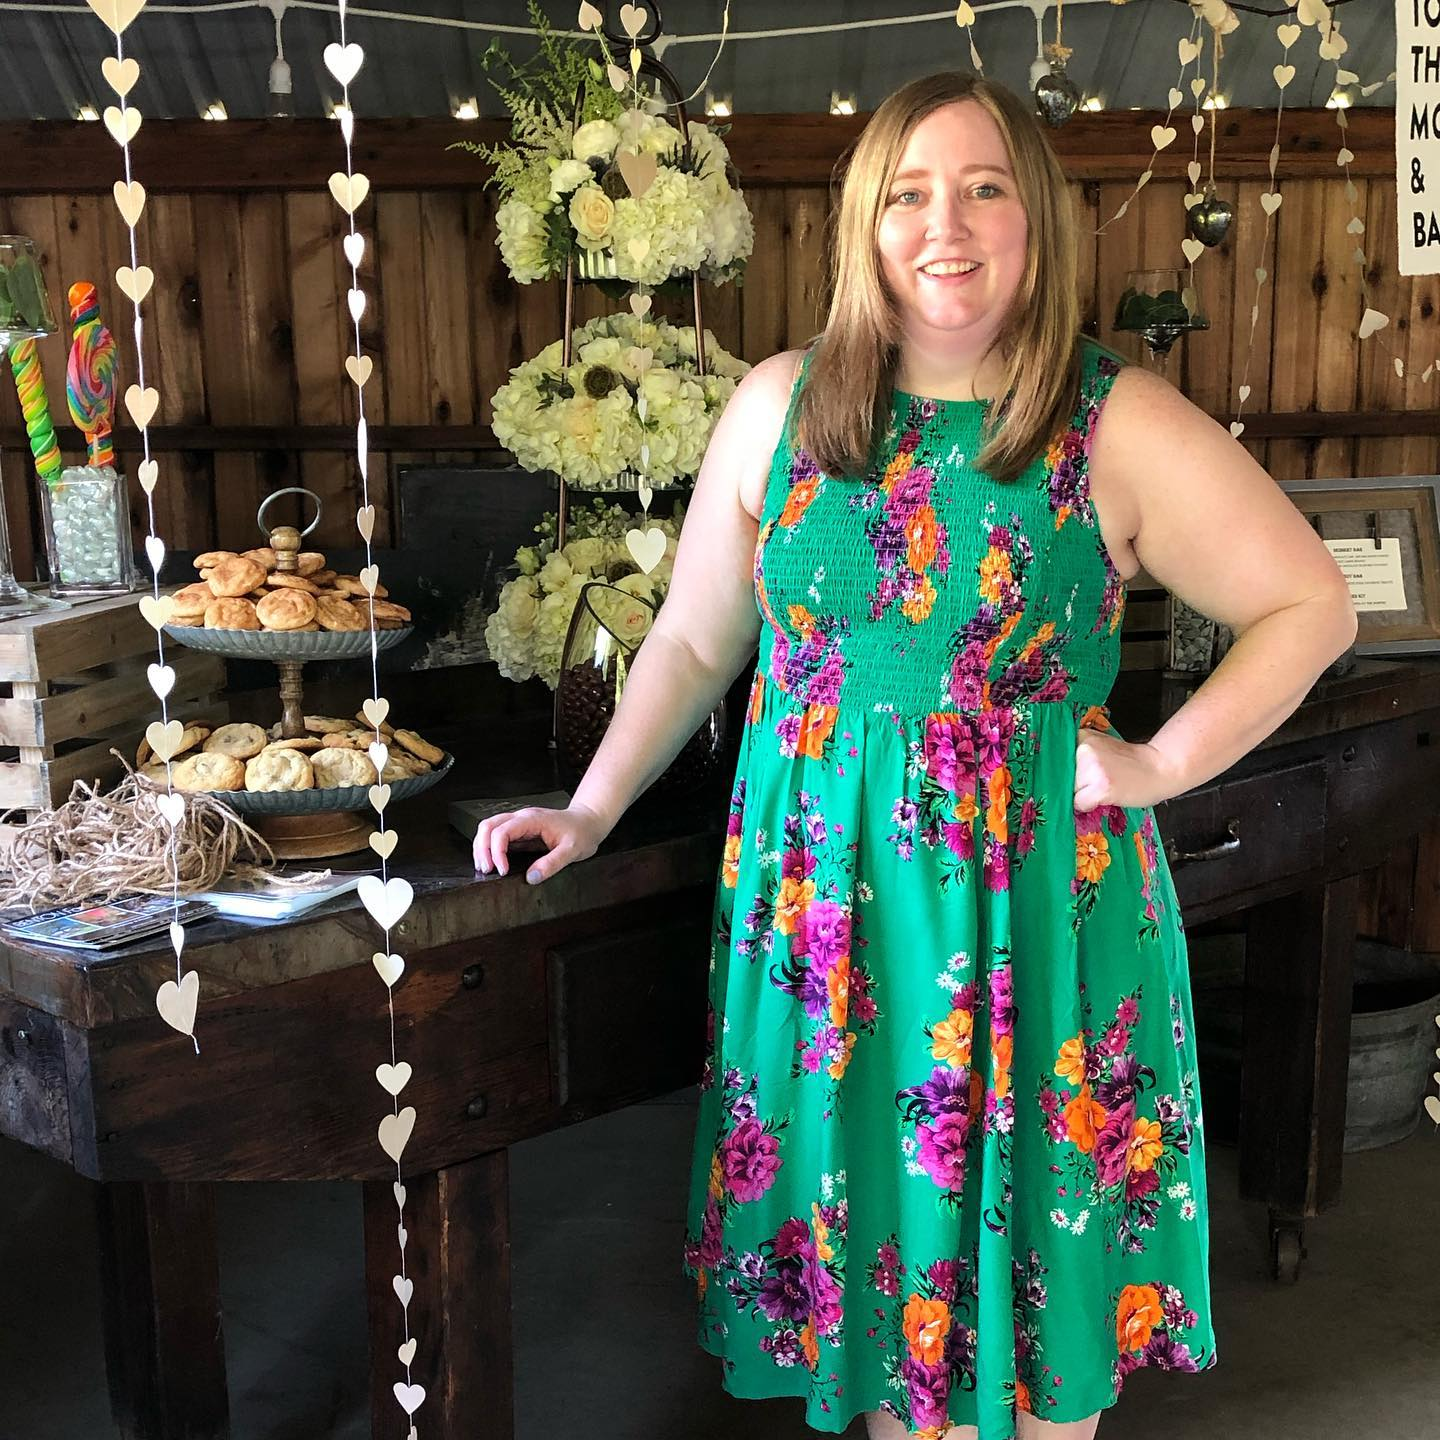 Kate Johnson in a green floral dress standing in front of a banquest table.